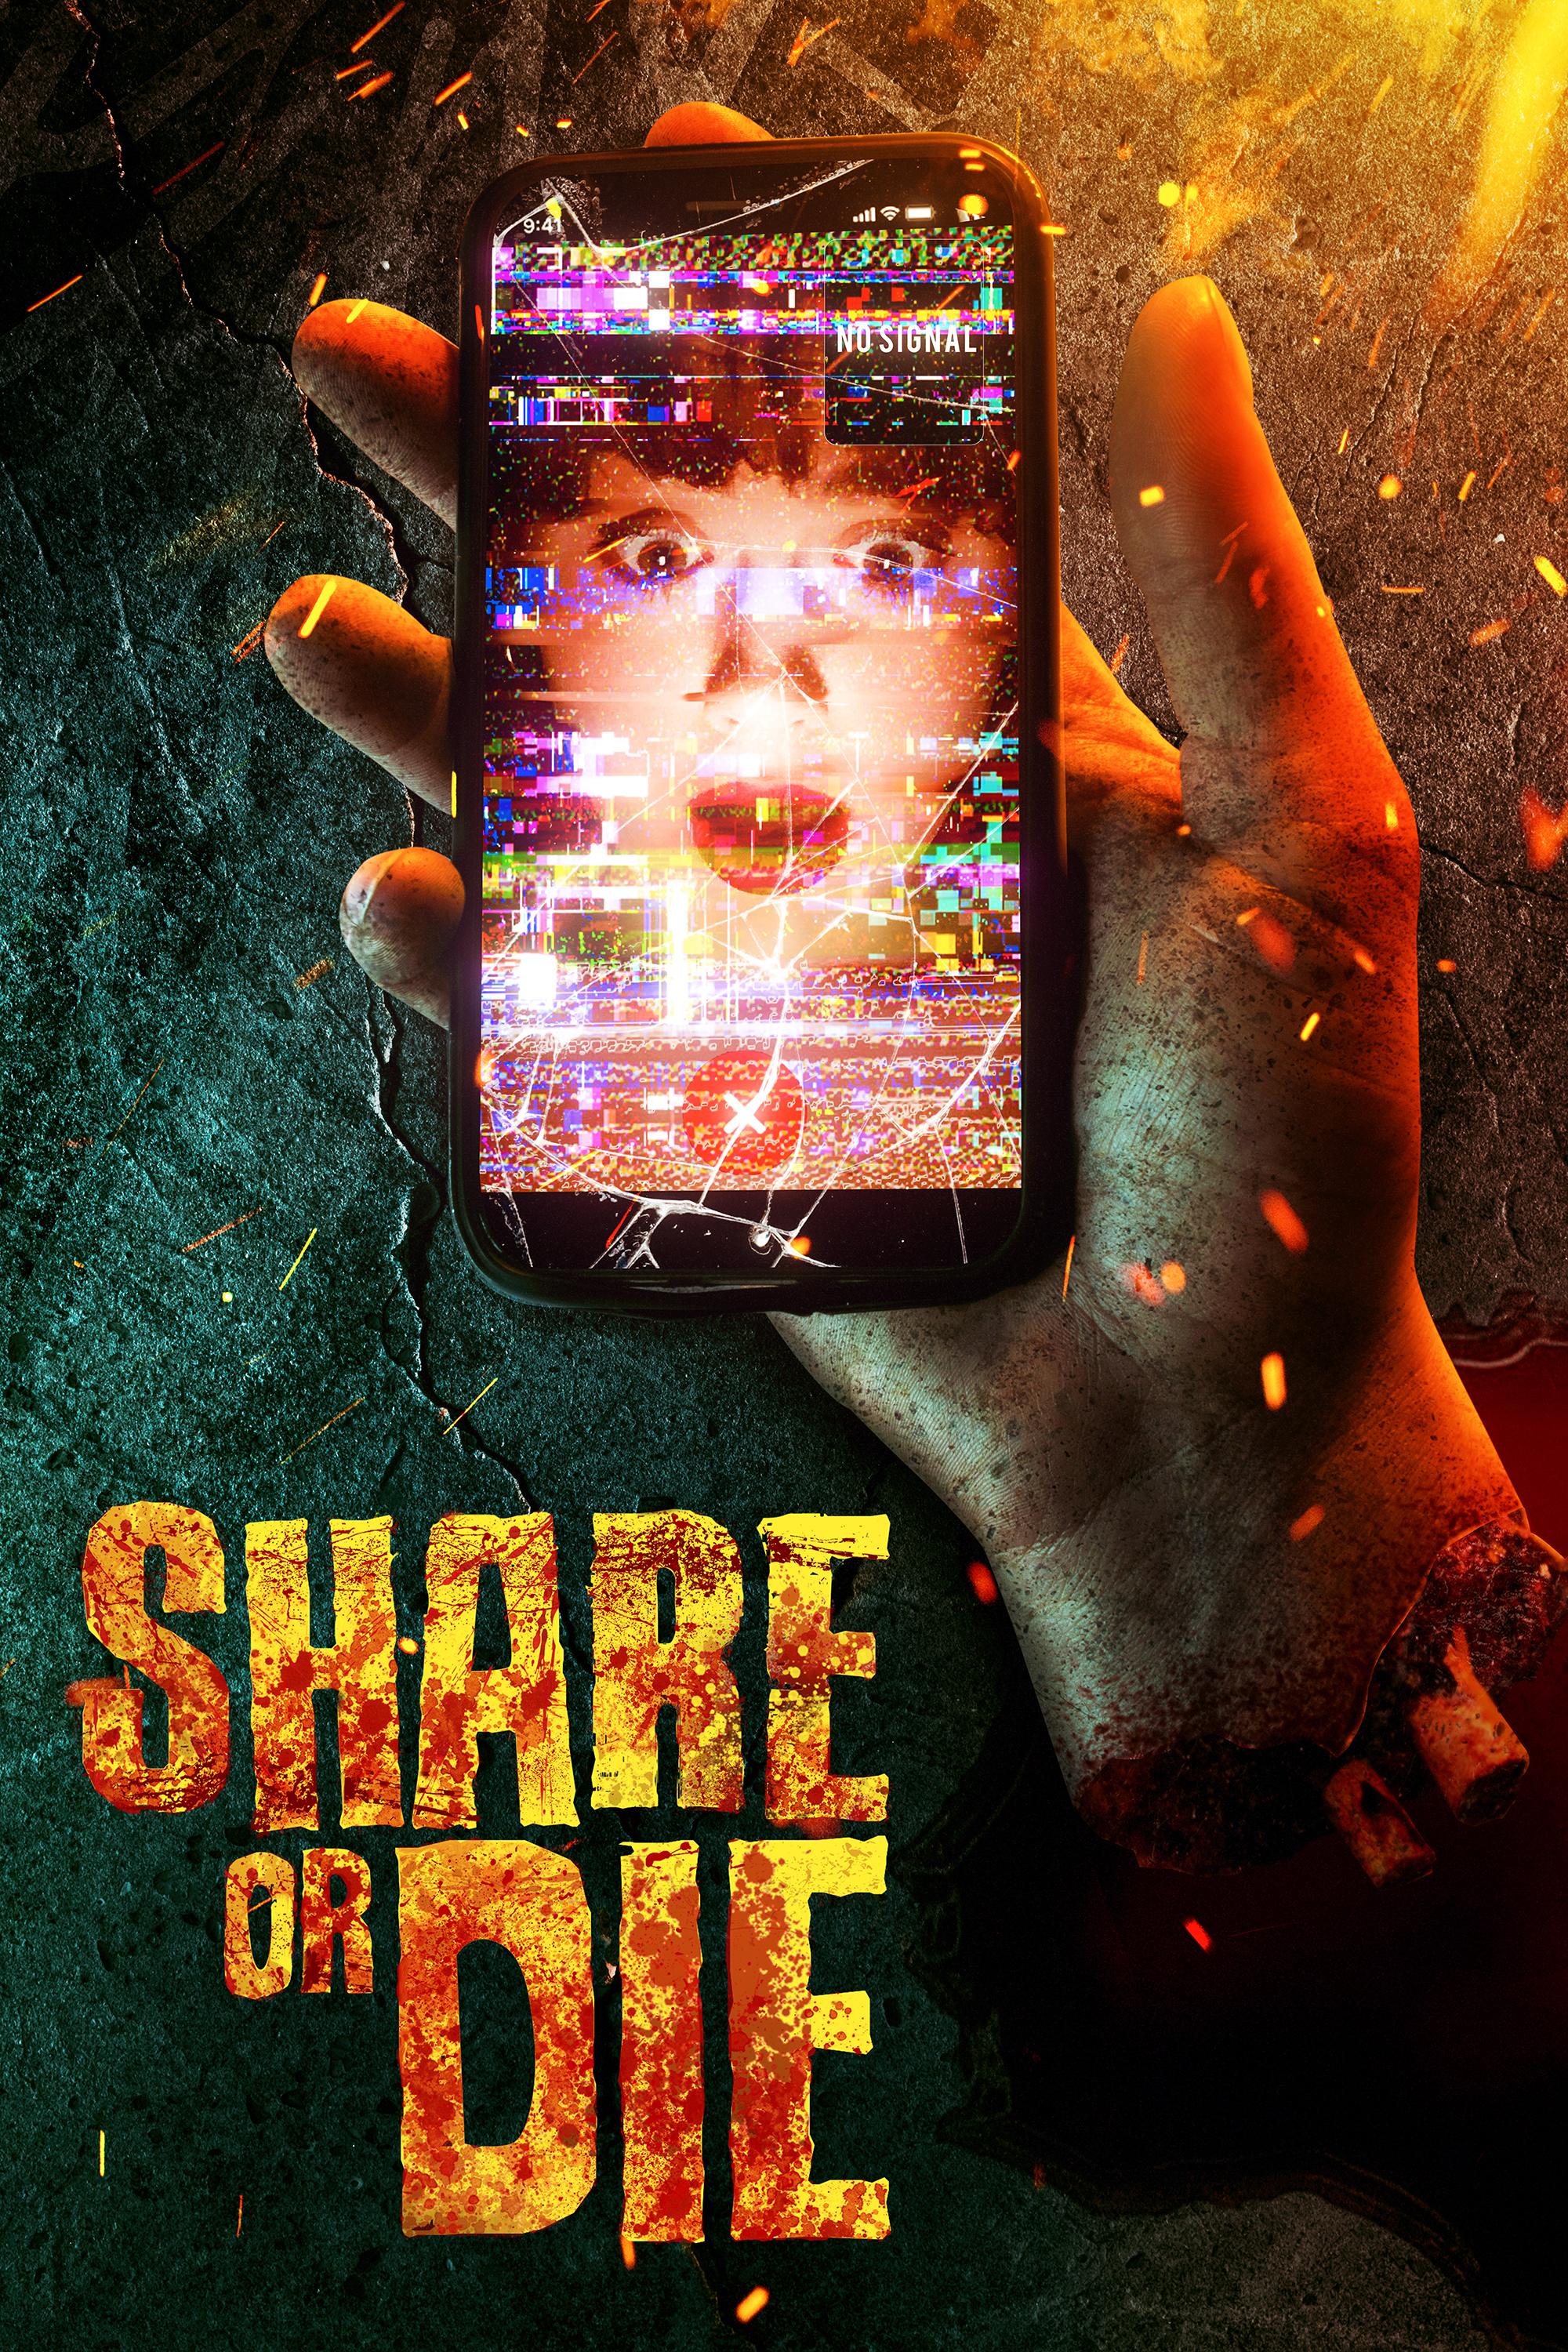 watch Share or Die on soap2day